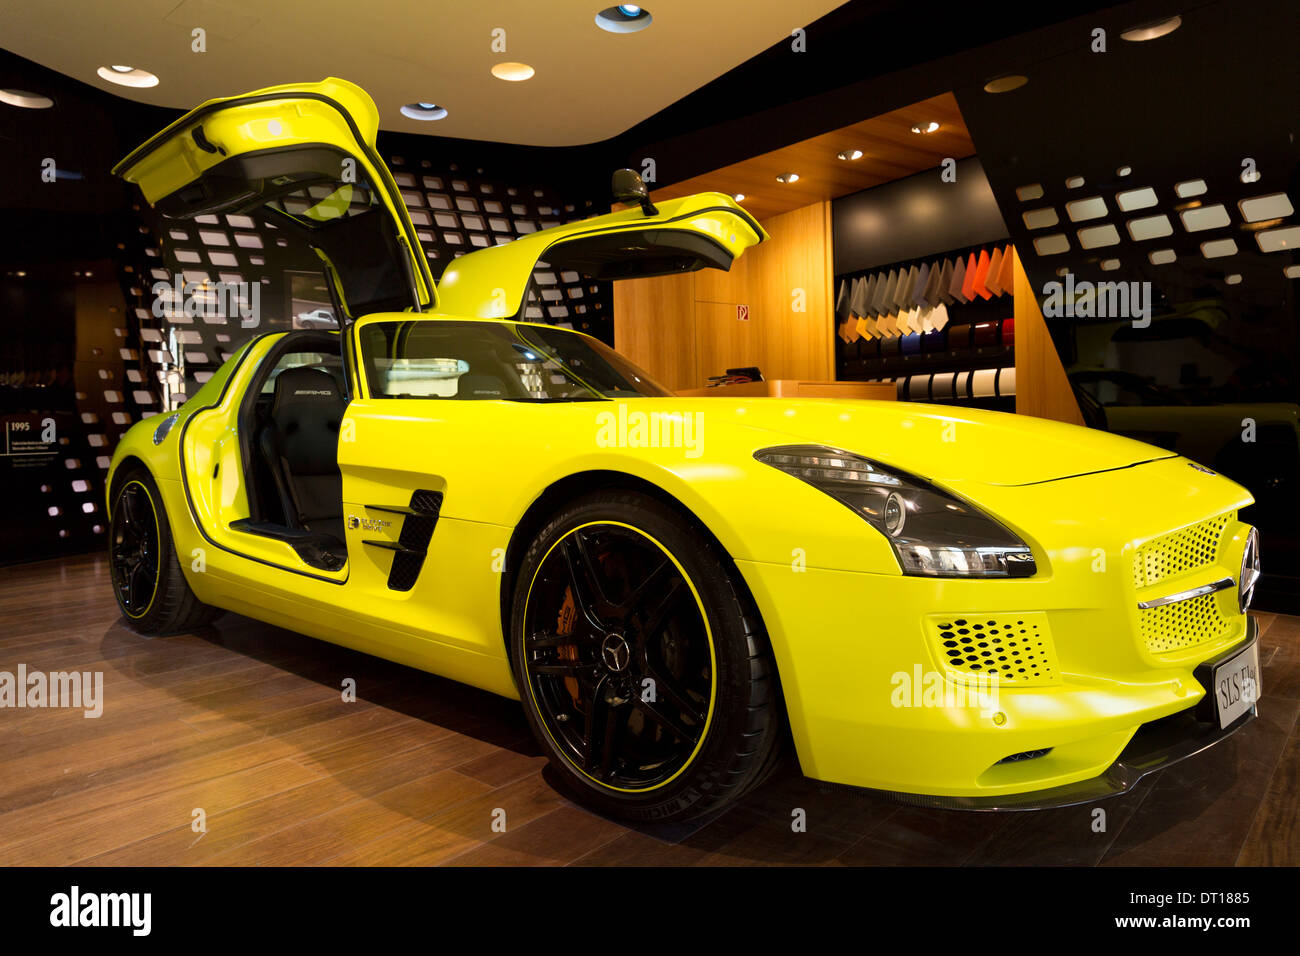 amg sls coupe electric drive gullwing motor car on display at amg mercedes showroom in odeonsplatzmunich bavaria germany